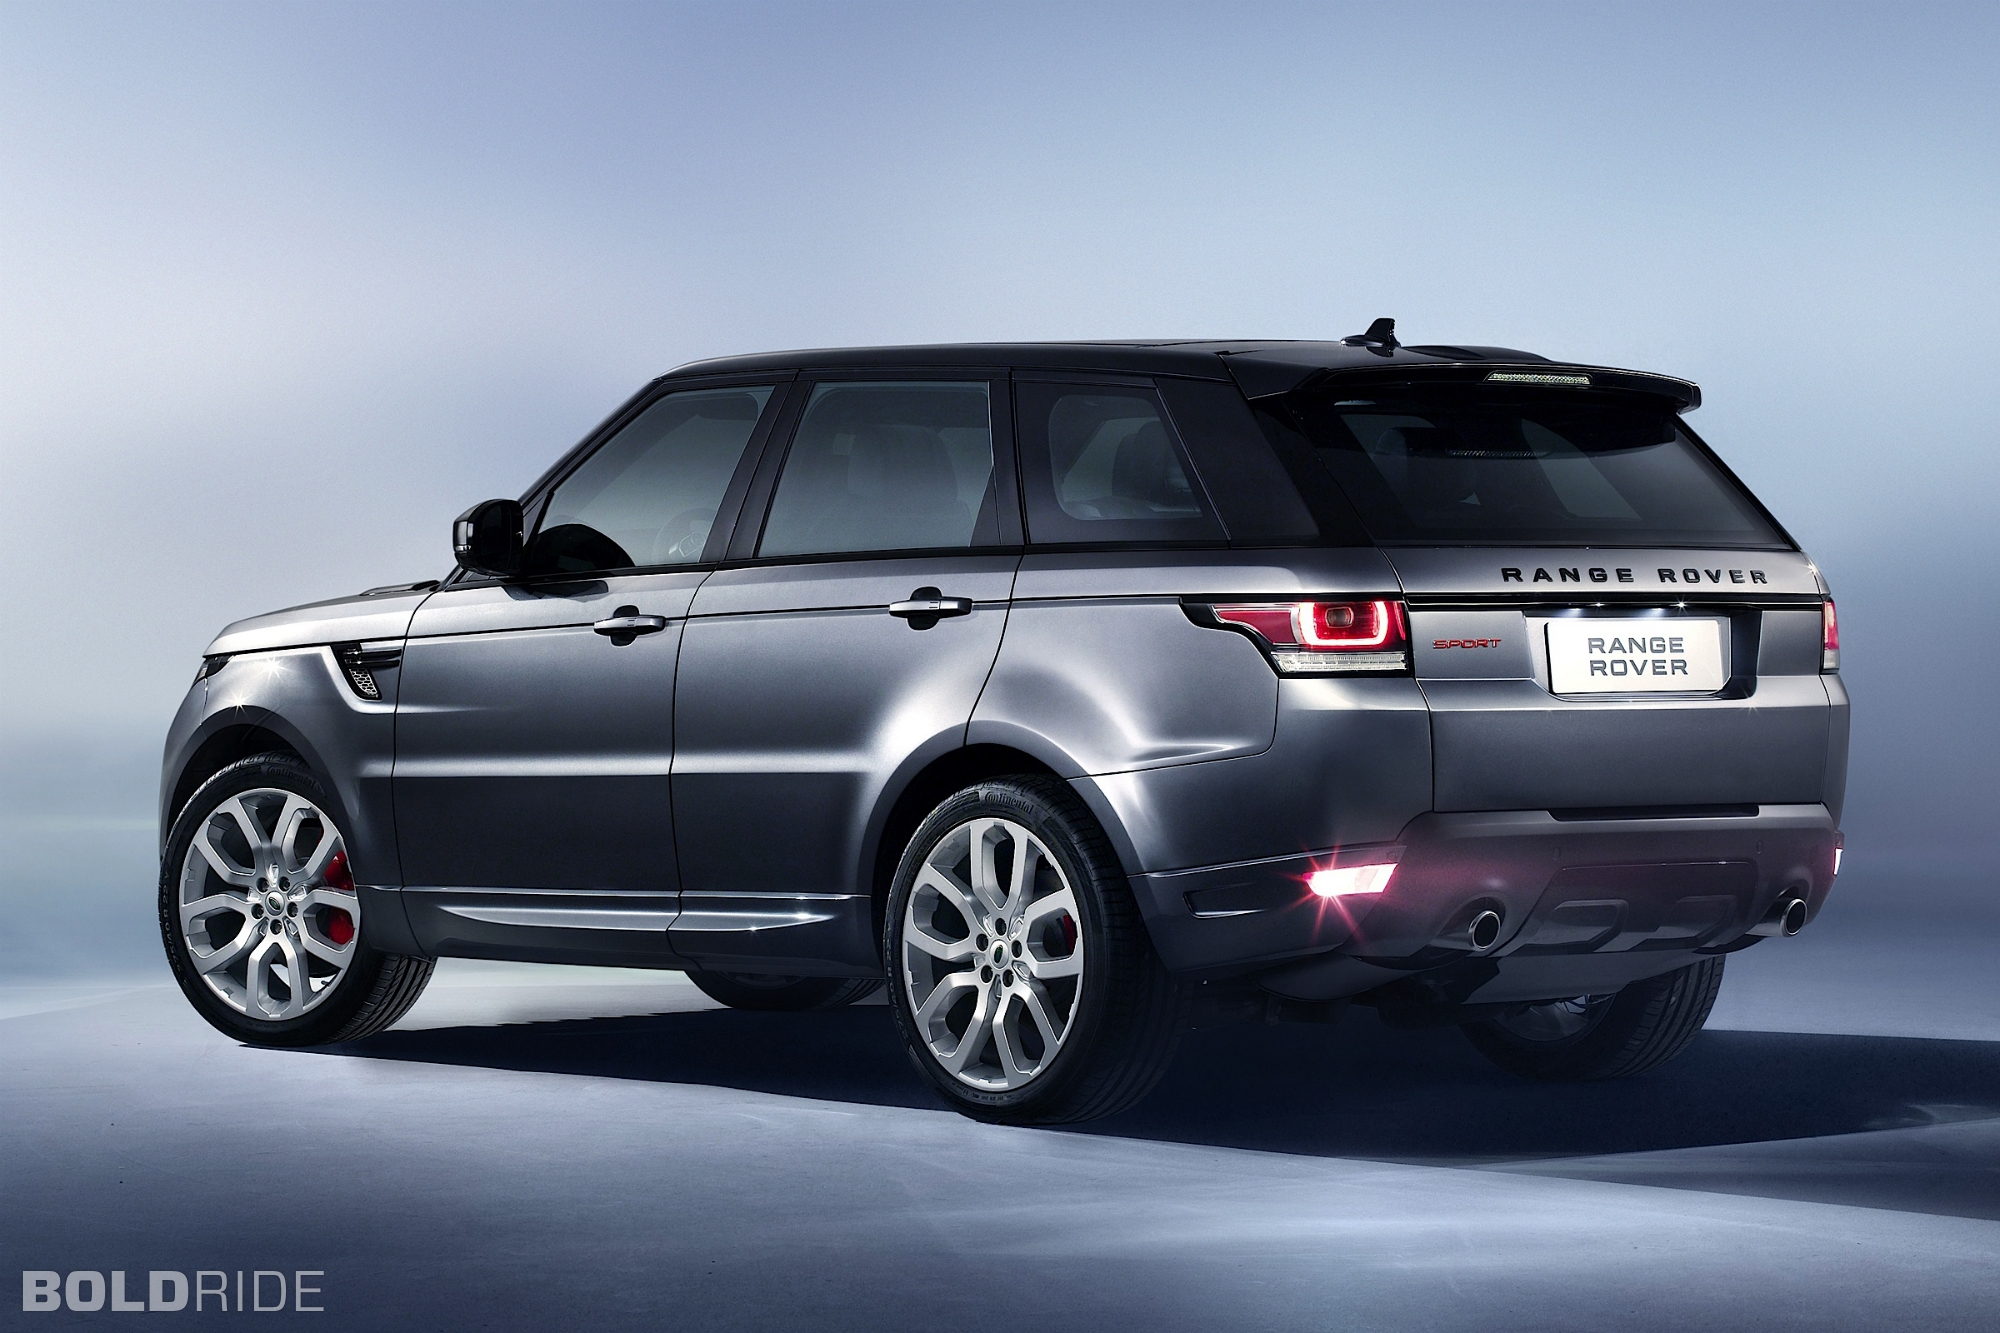 2013 Land Rover Range Rover Sport Information and photos